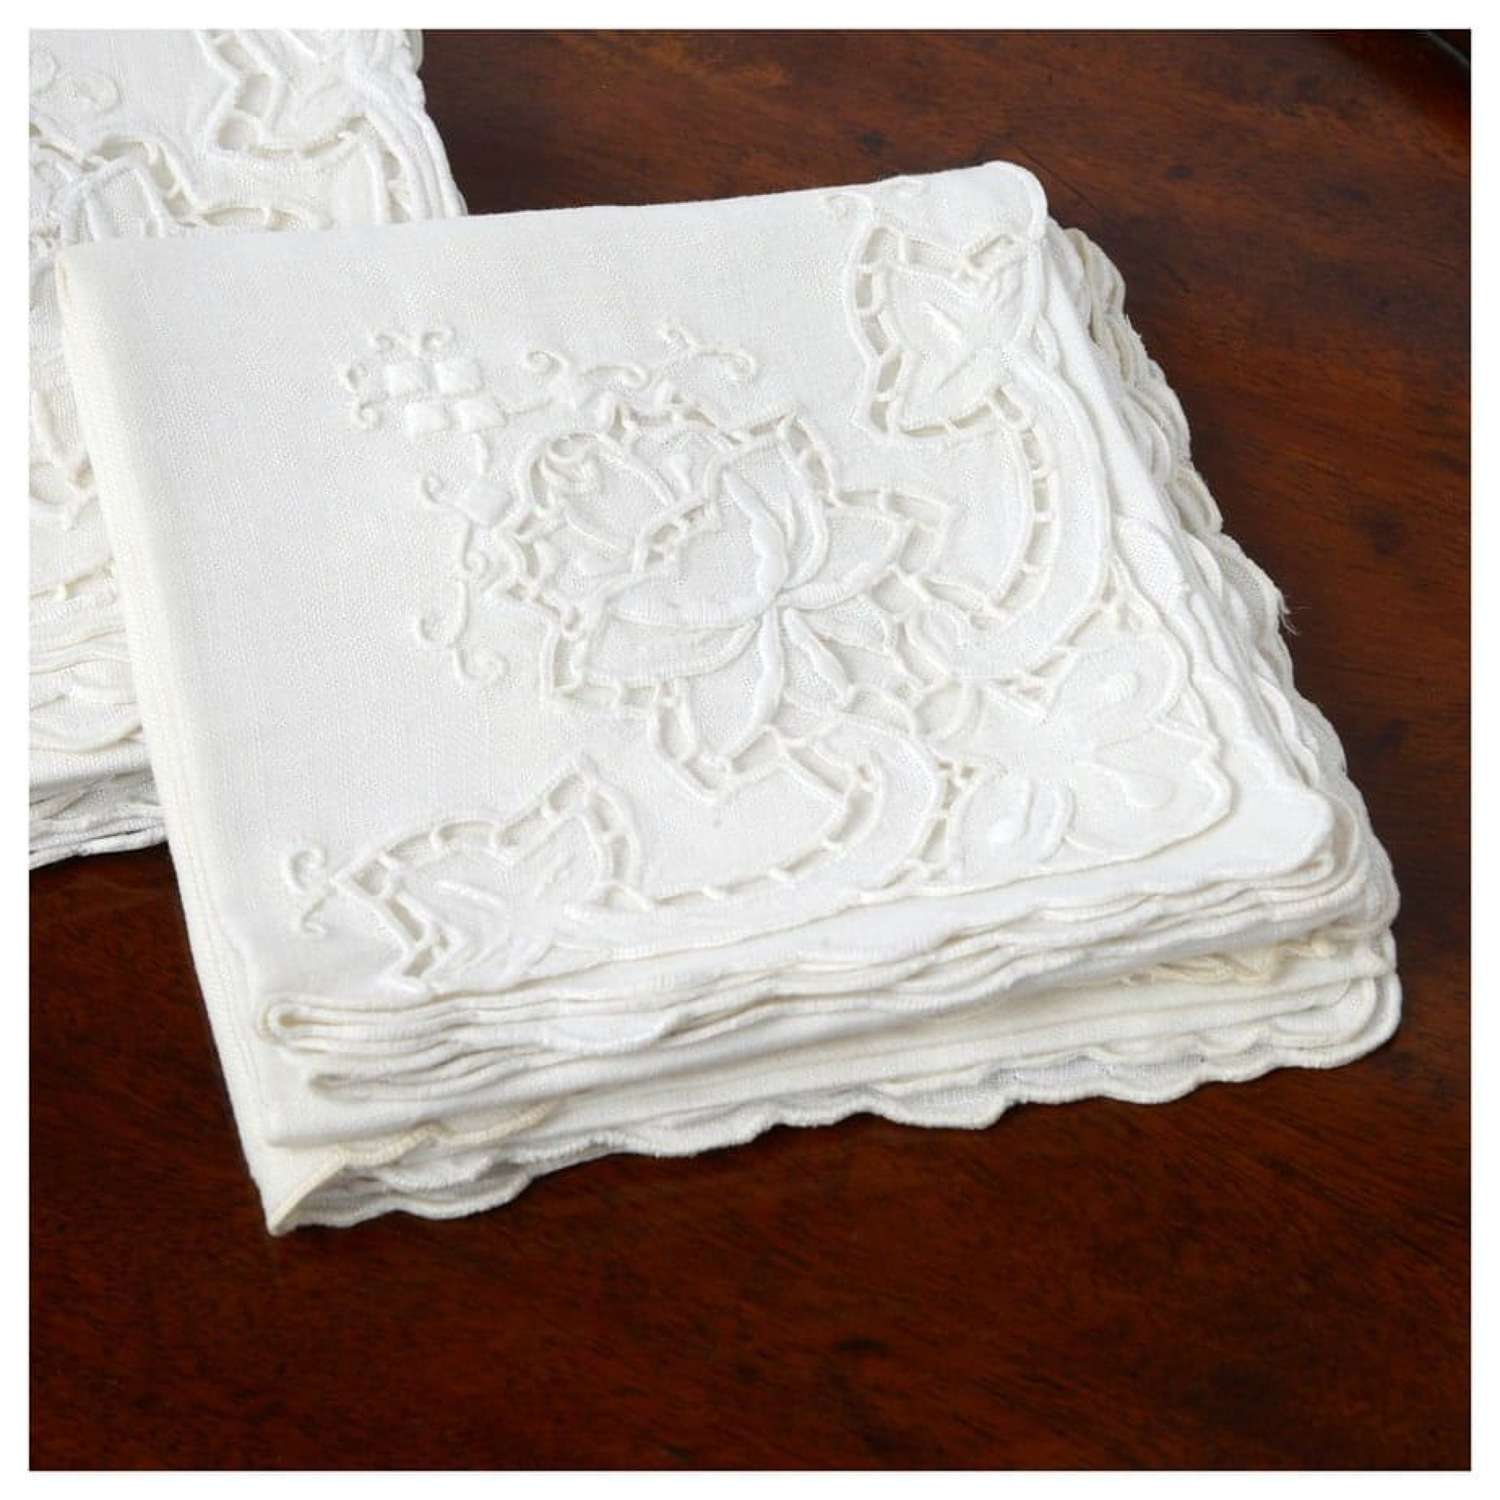 A set of 6 embroidered linen napkins